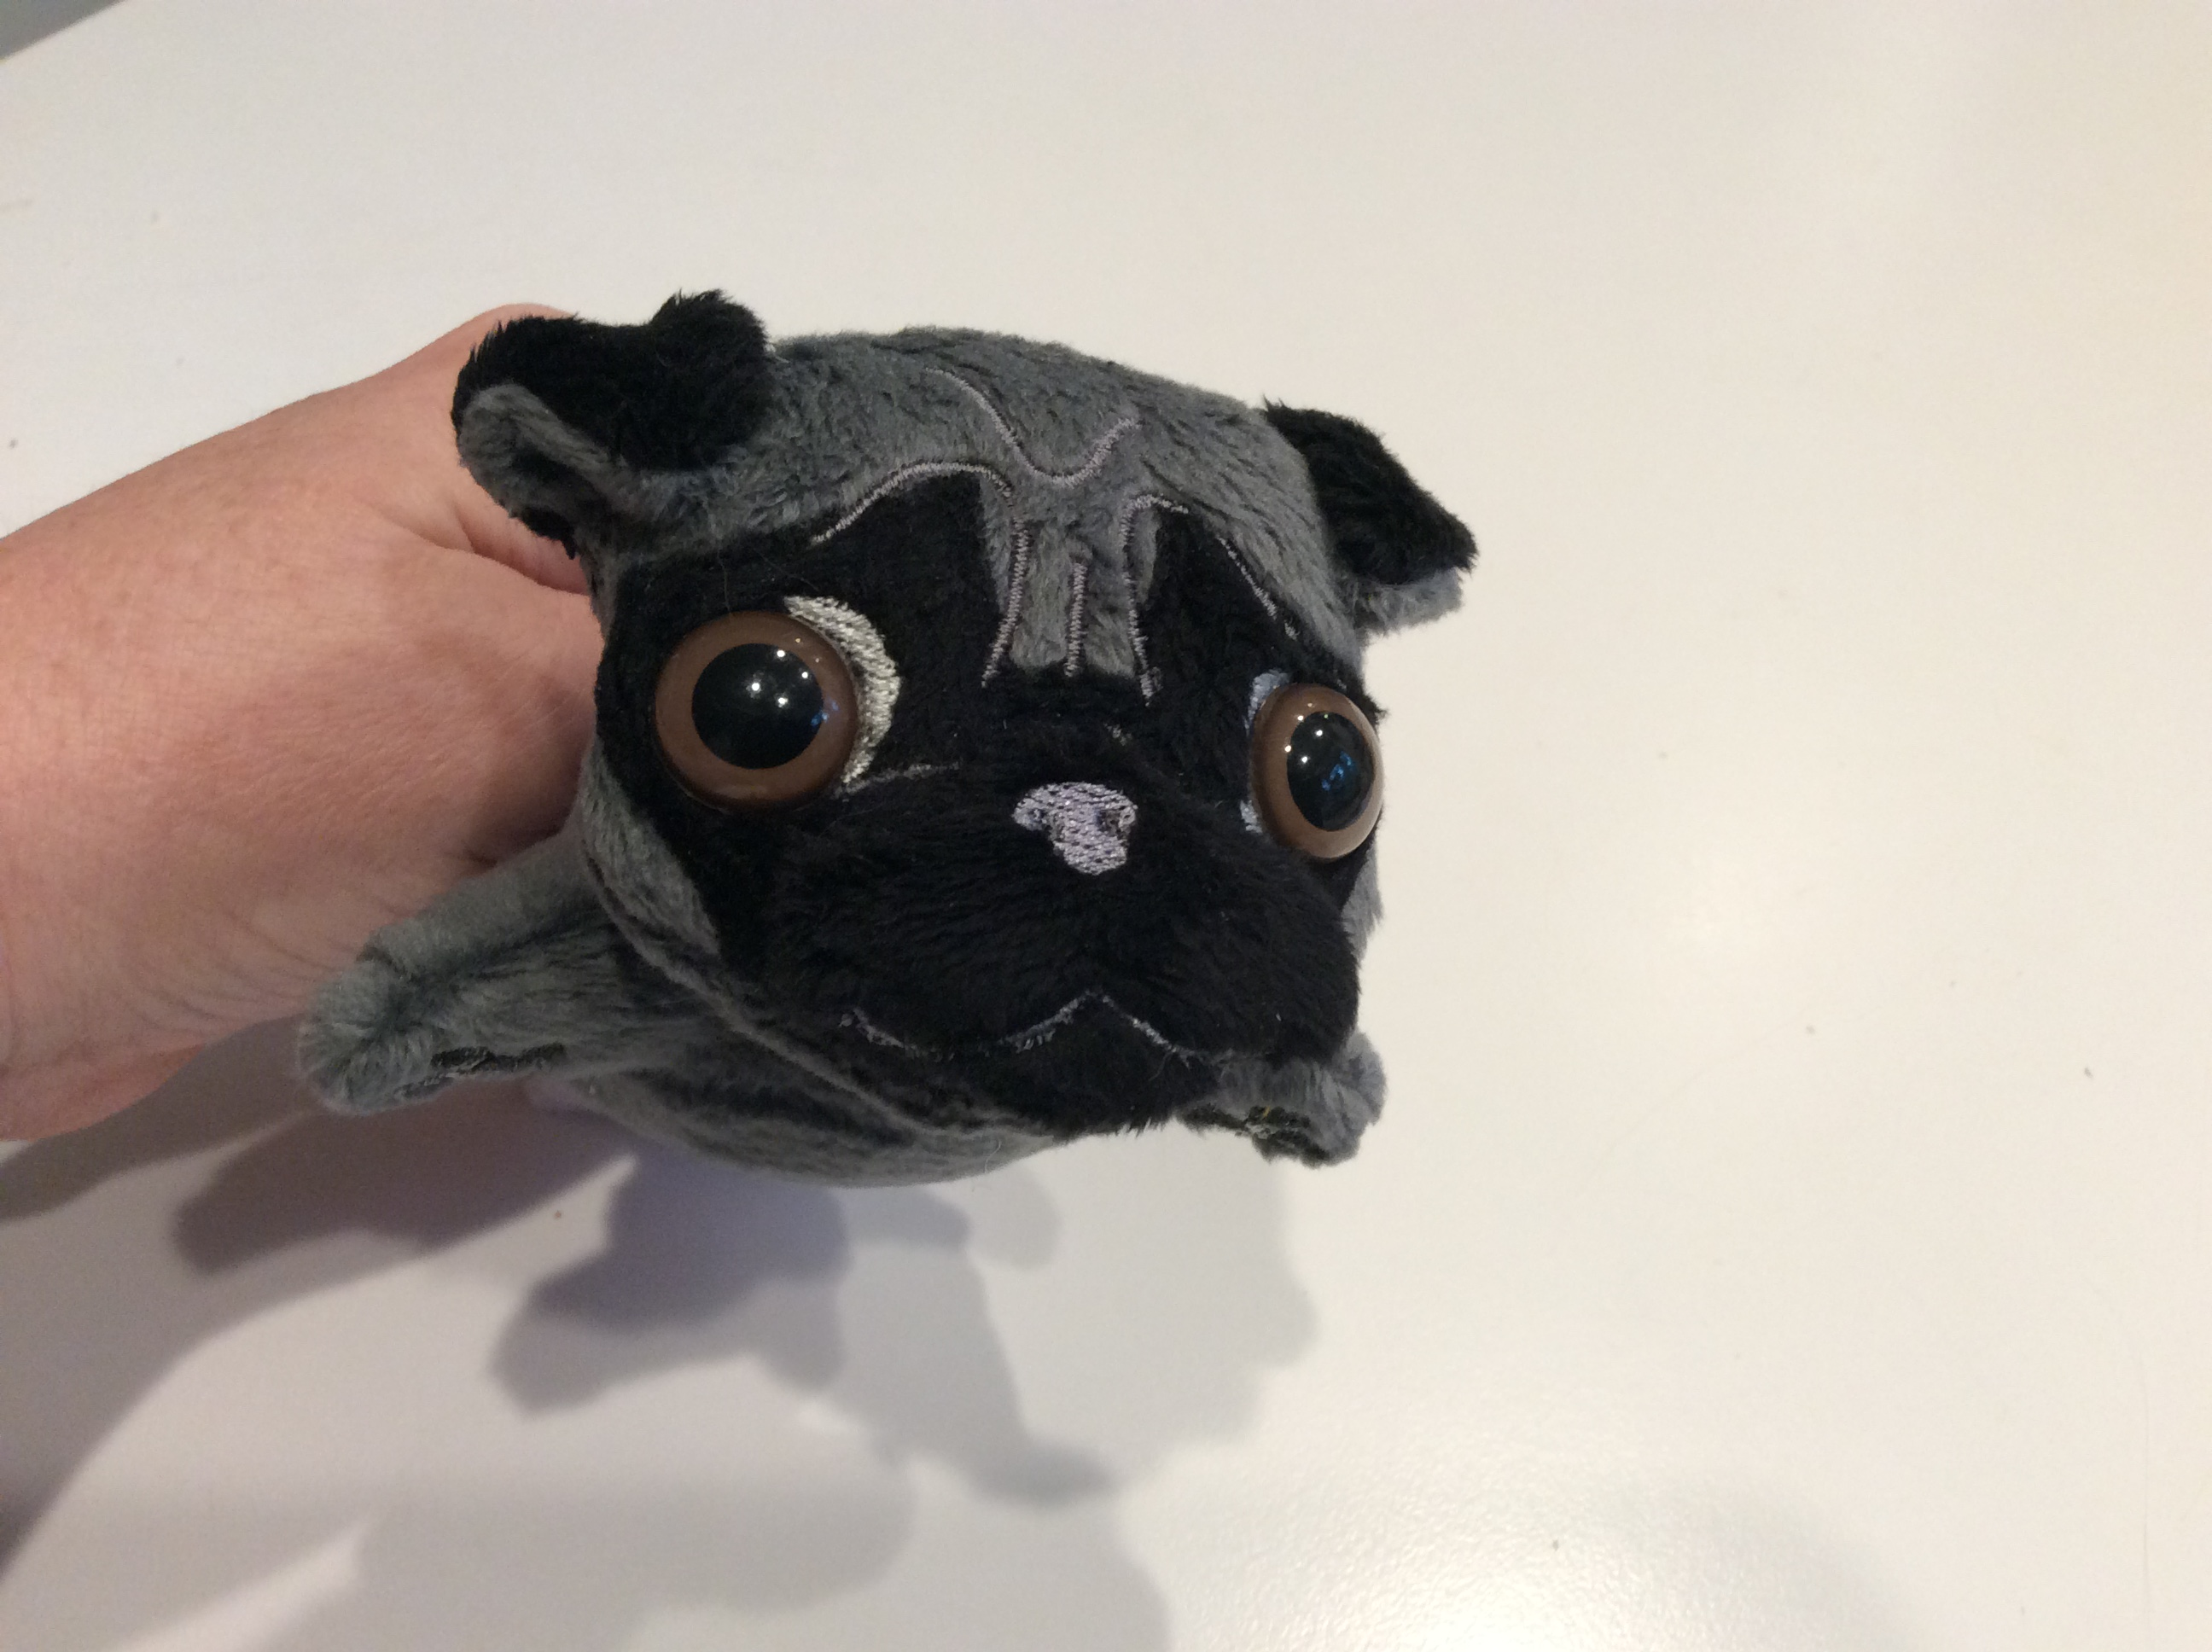 Another view of a plush silver pug face